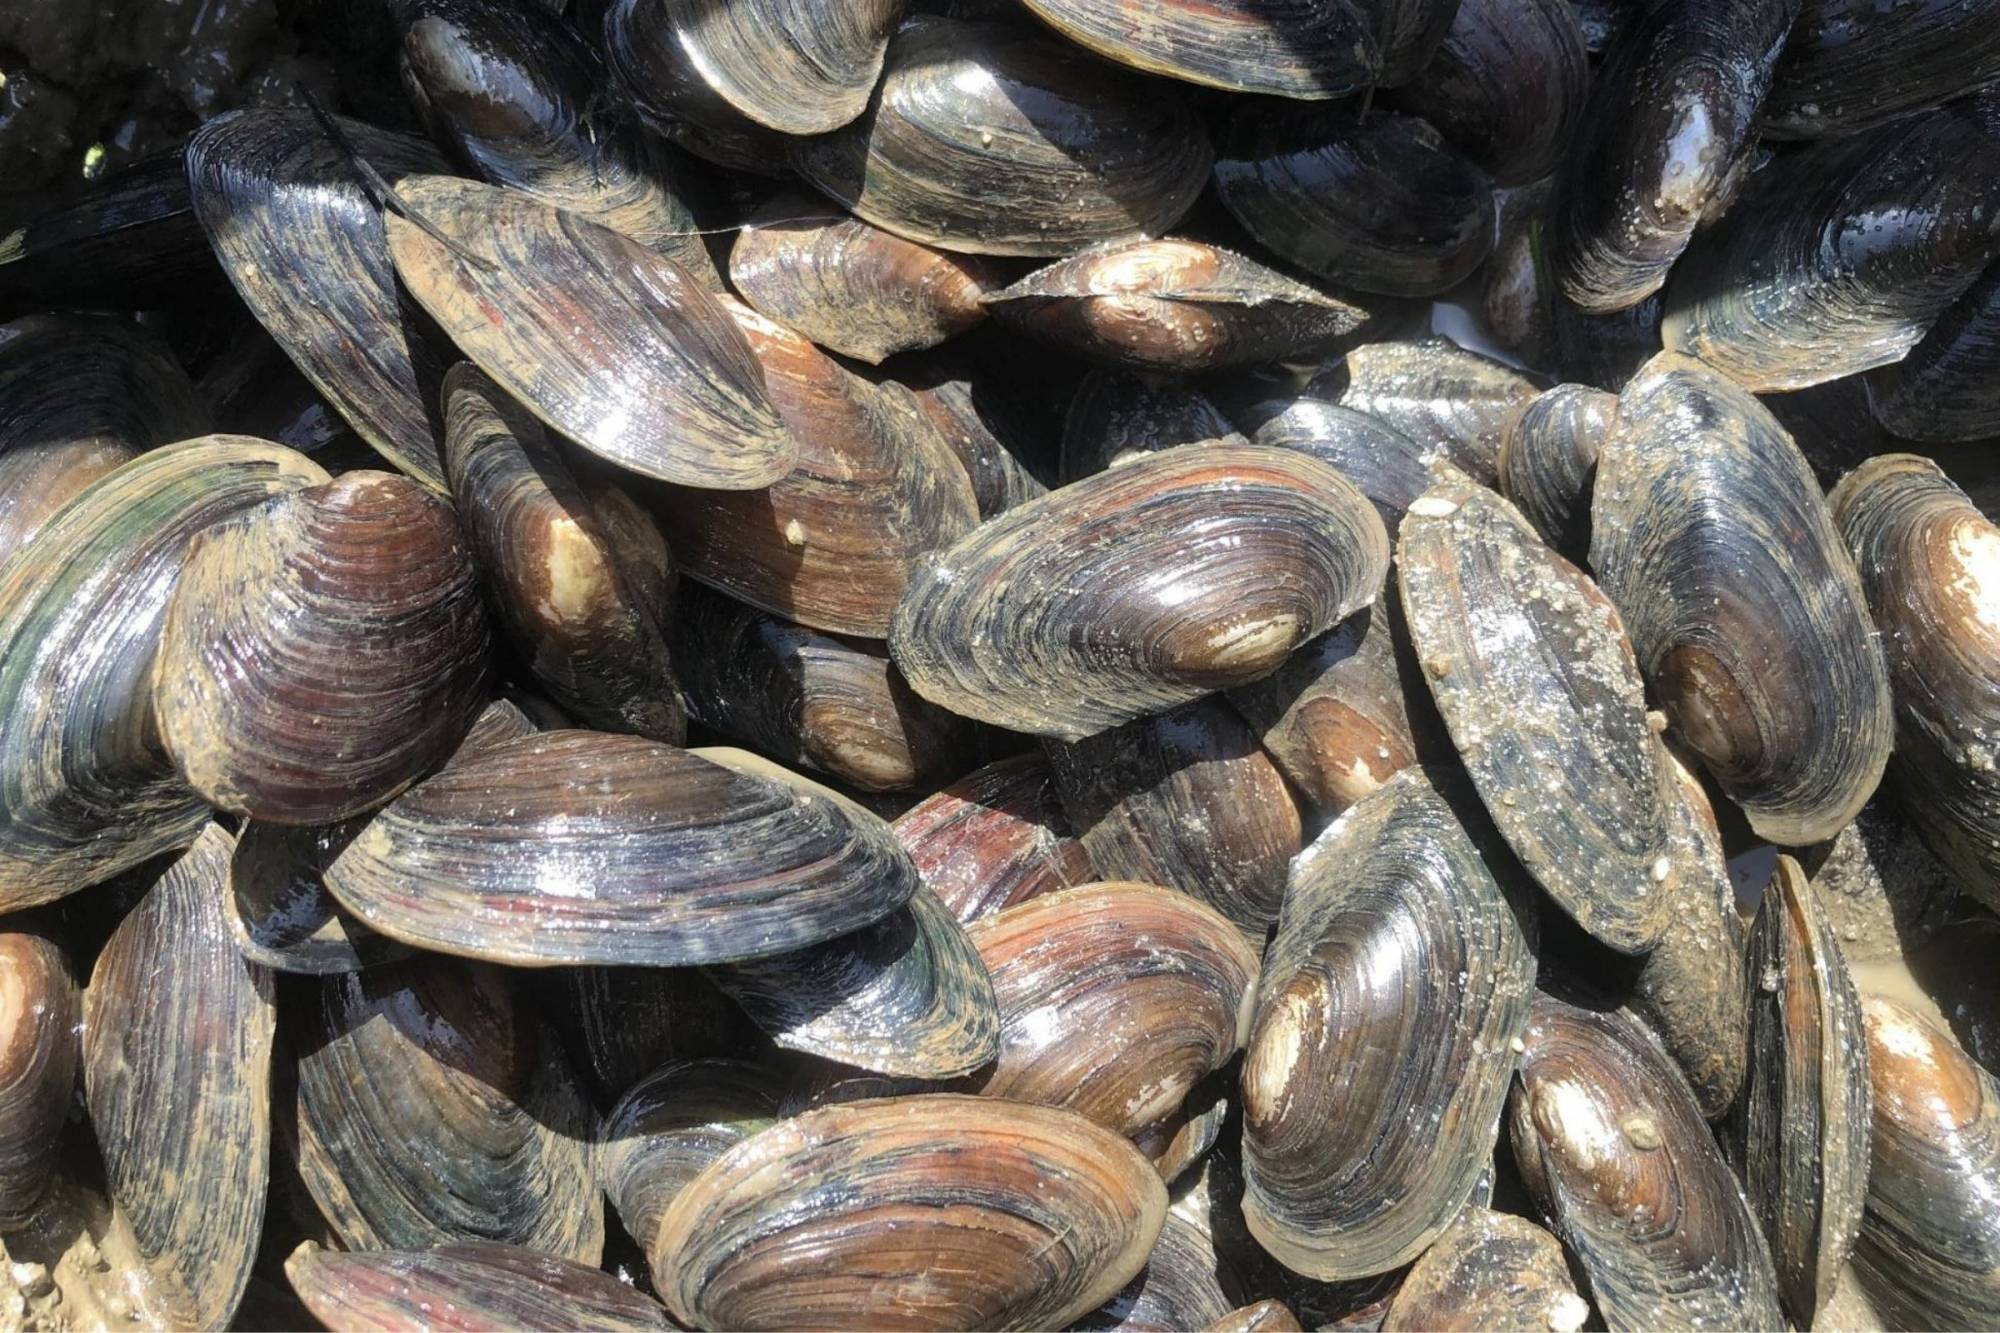 Our alewife floaters have shown remarkable shell growth, their growth rate is known to be faster than that of pondmussels or lampmussels.  In order to survive they need specific host fish from the shad family like American Shad and herring.